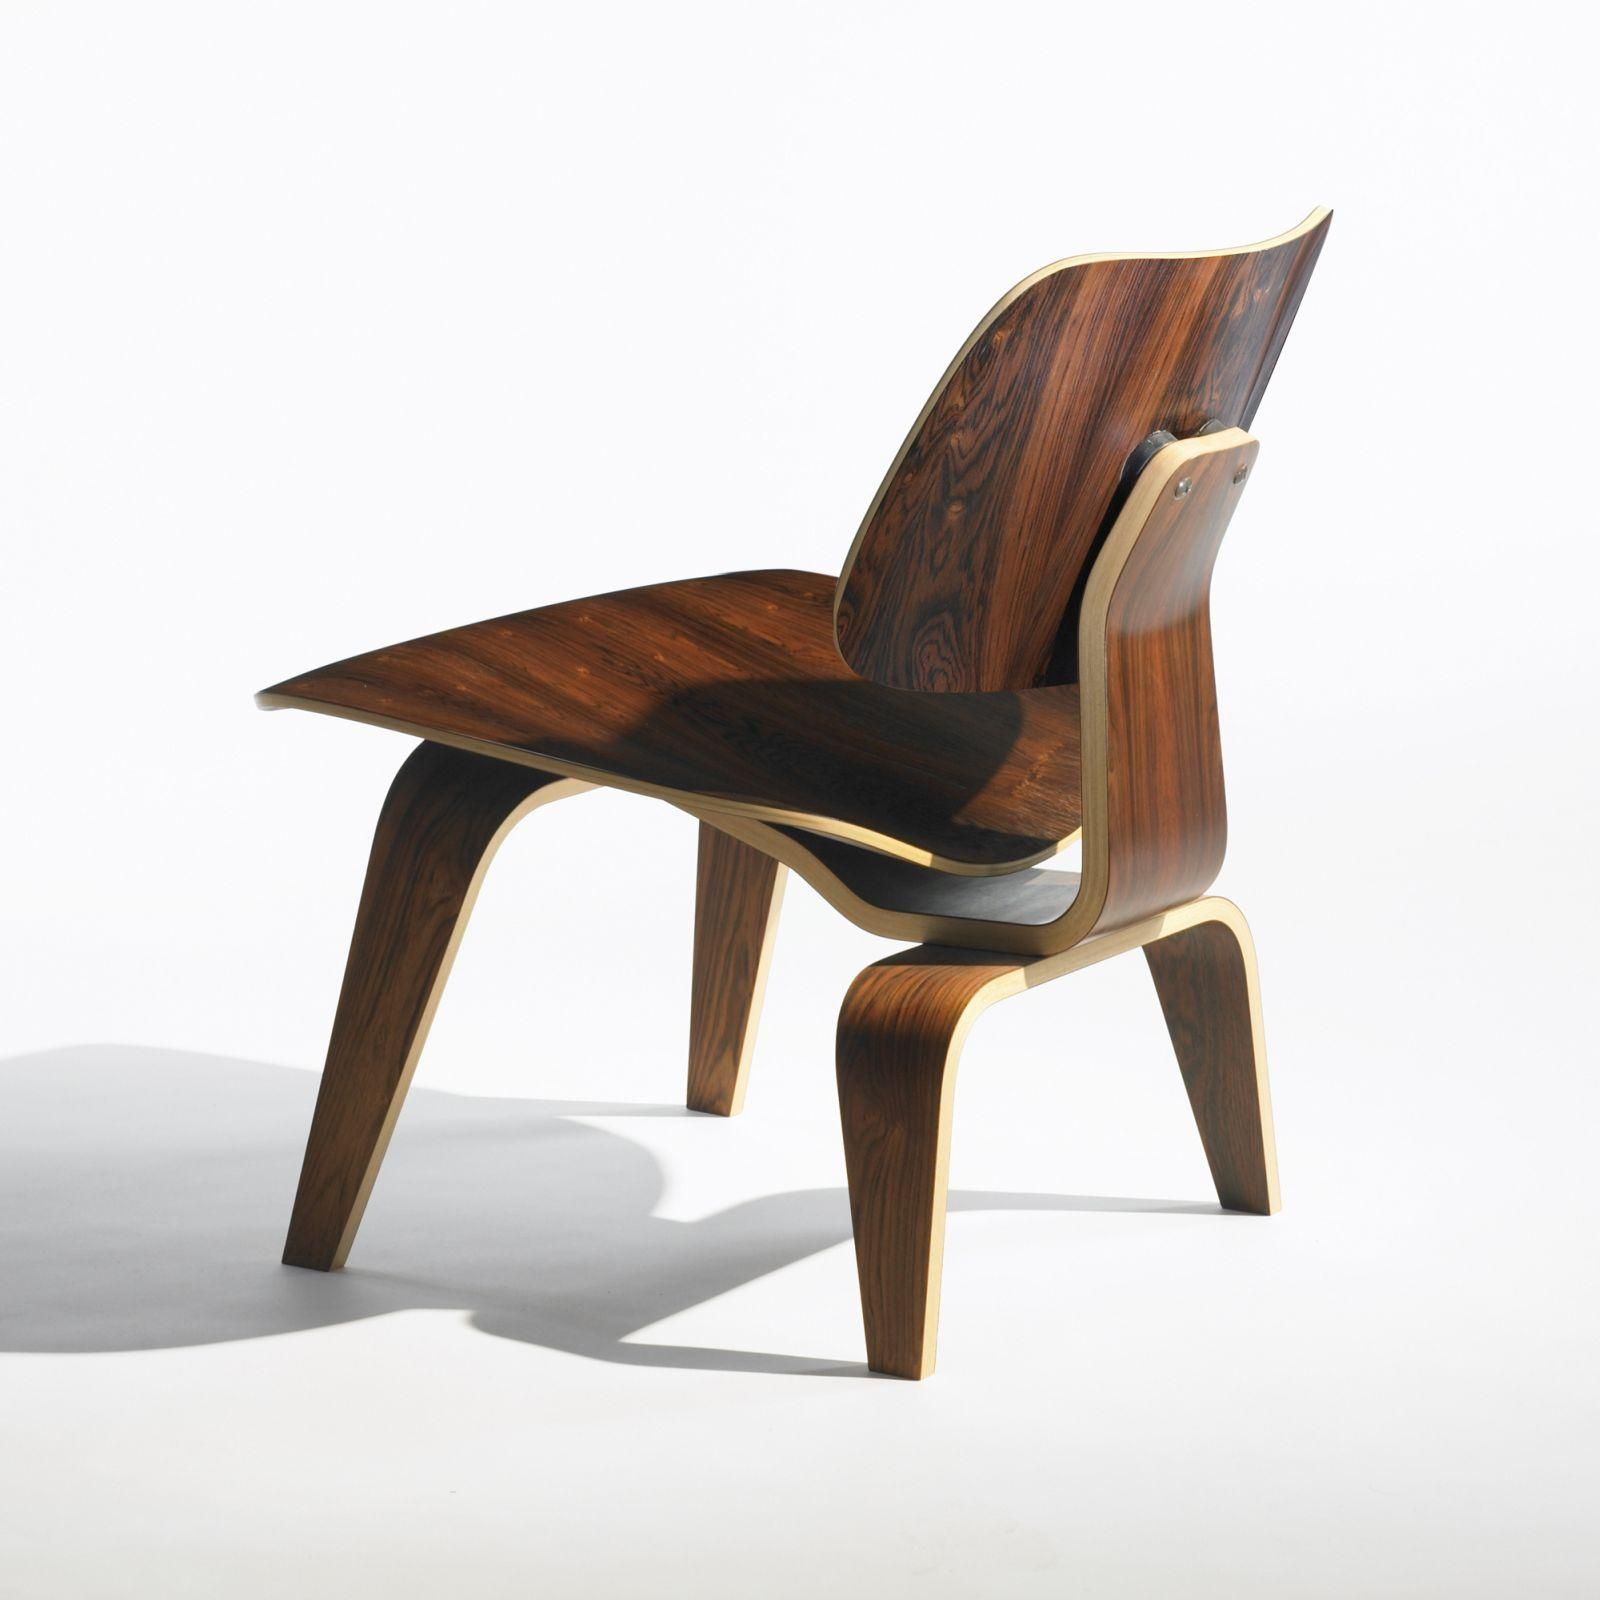 Current favourite vintage chair Ray and Charles Eames